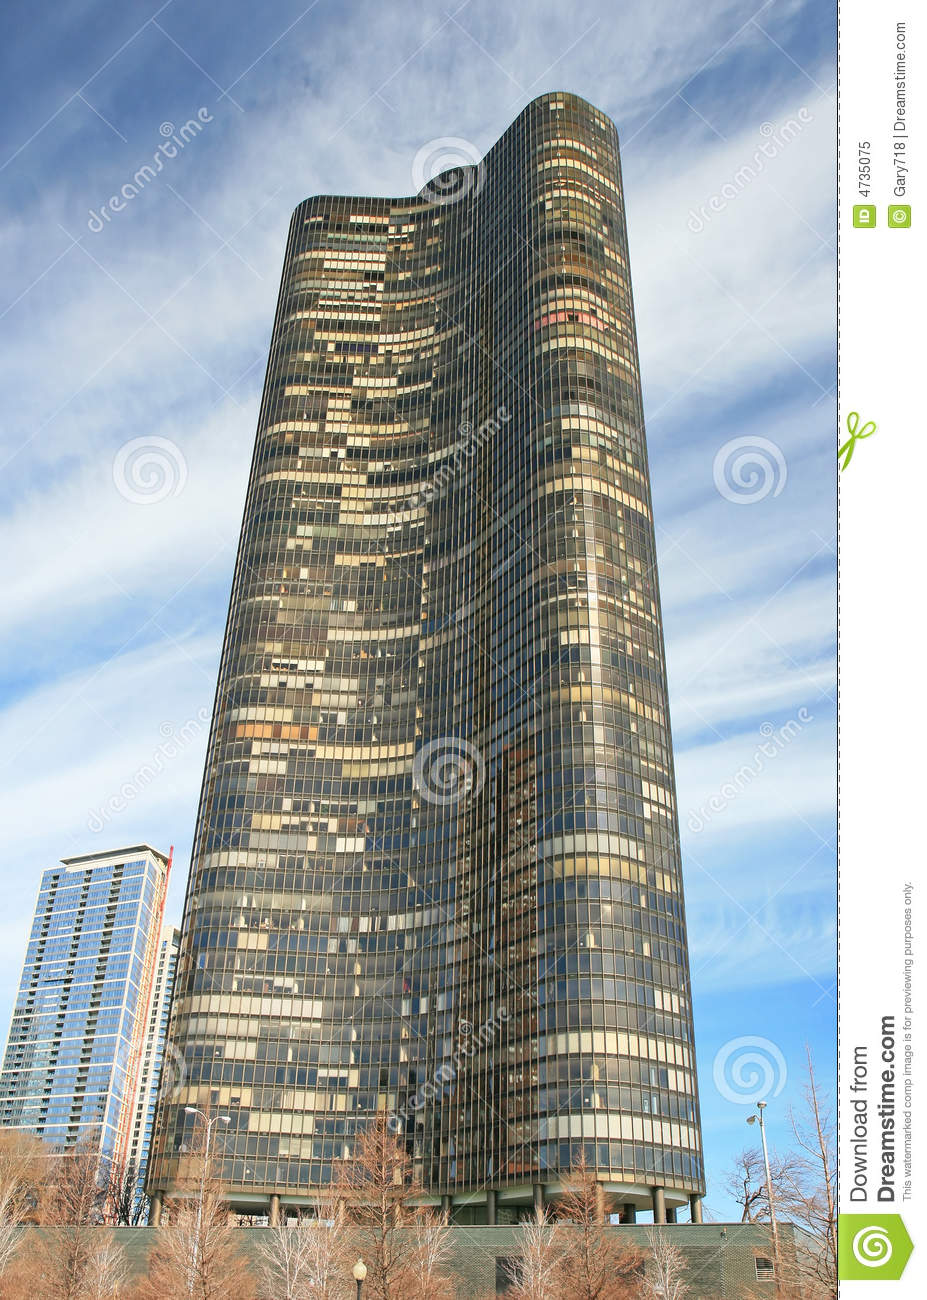 The Highrise Buildings In Chicago Stock Image  Image